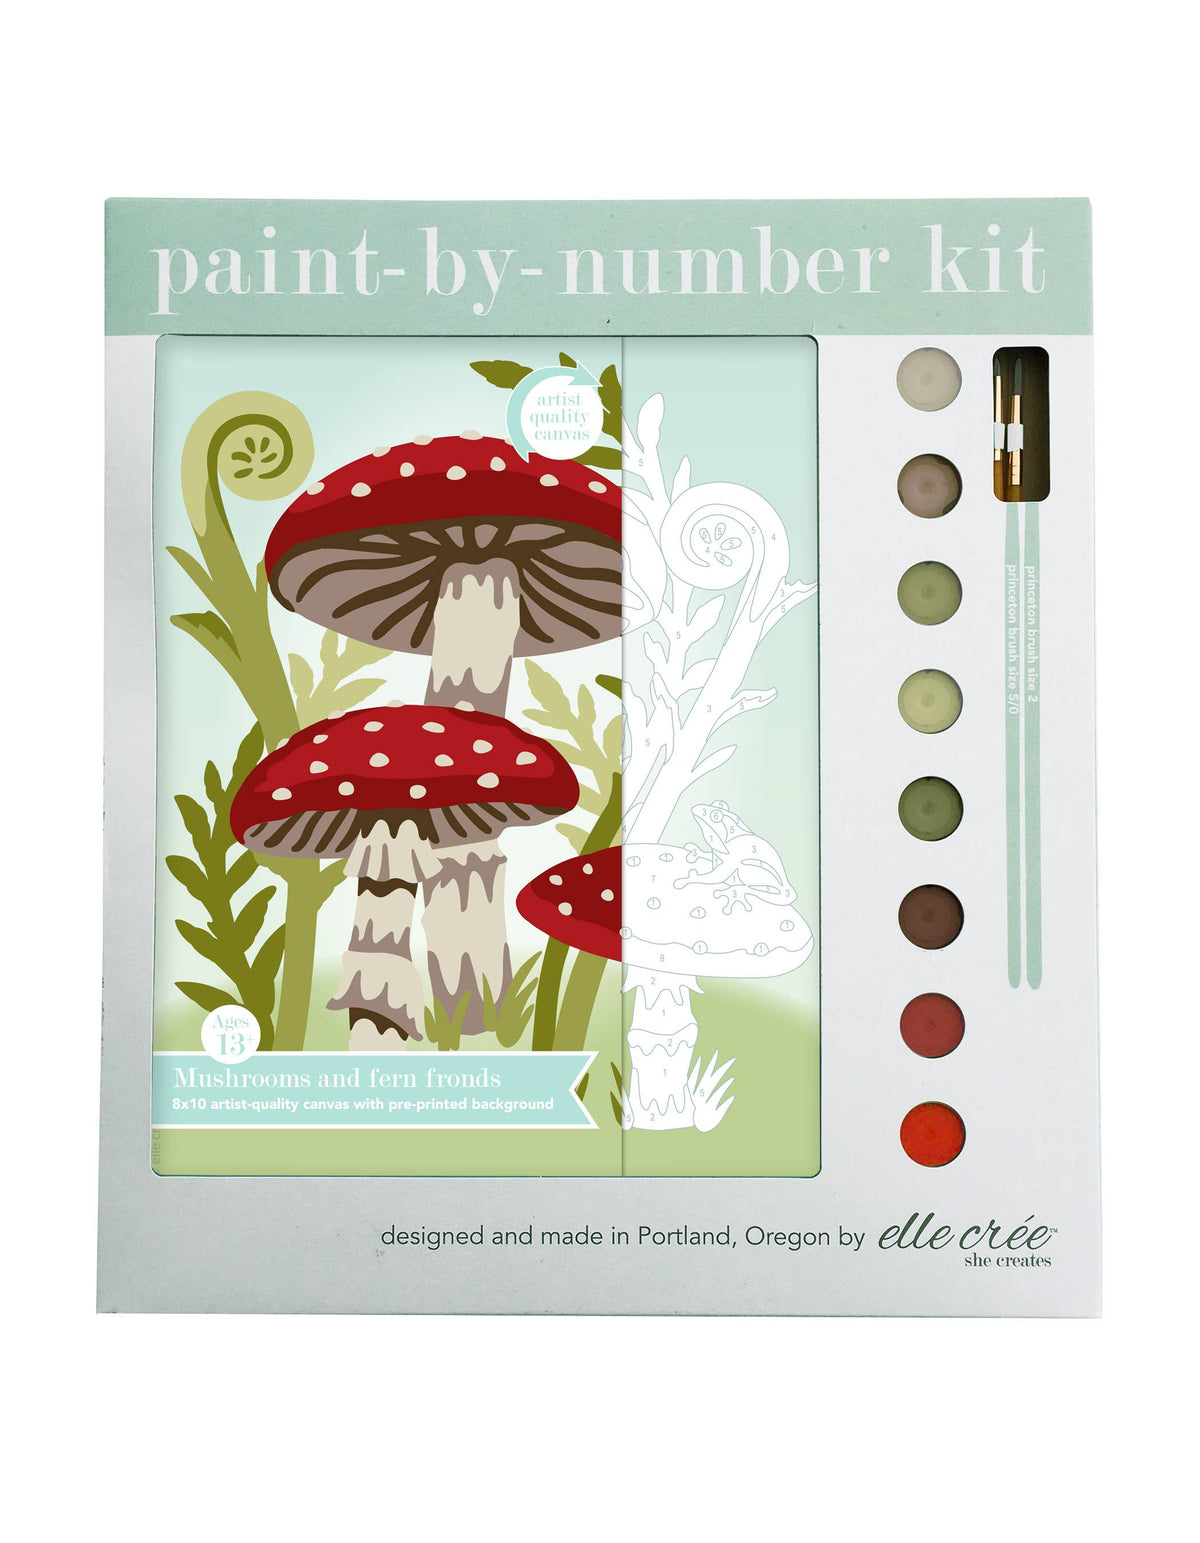 Mushrooms and Fern Fronds Paint-by-Number Kit